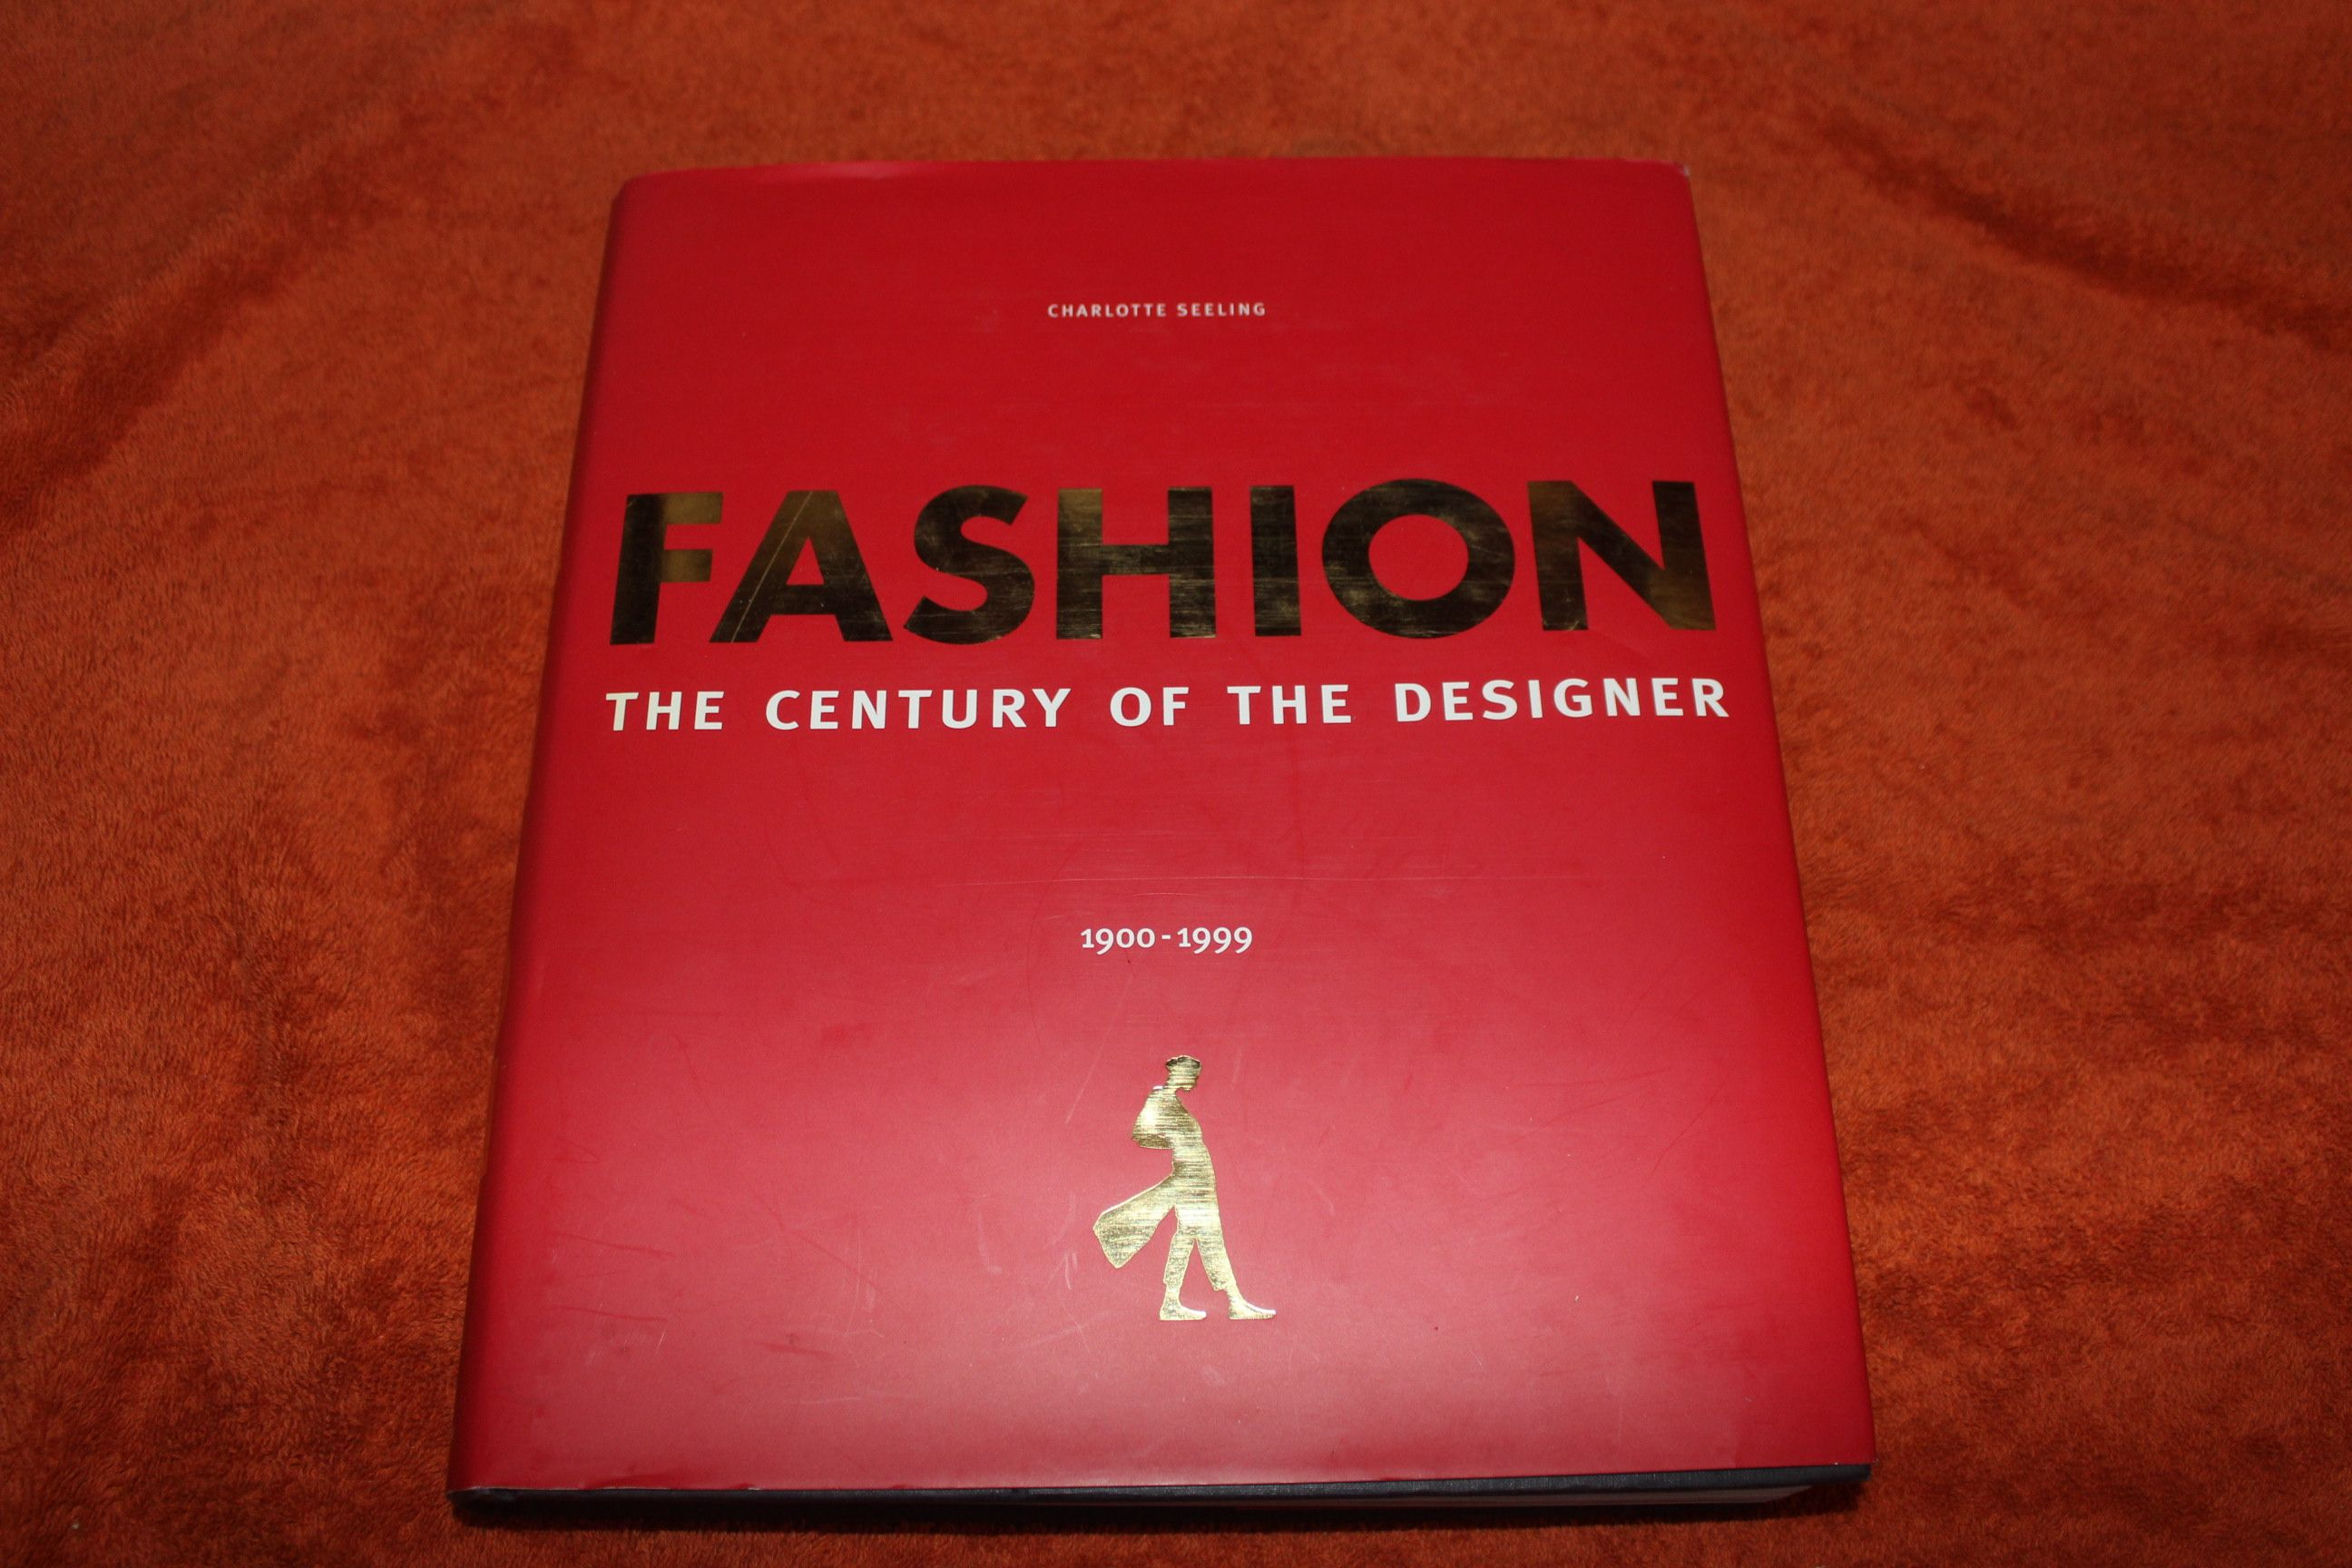 Fashion: The Century of the Designer 1900-1999 by Charlotte